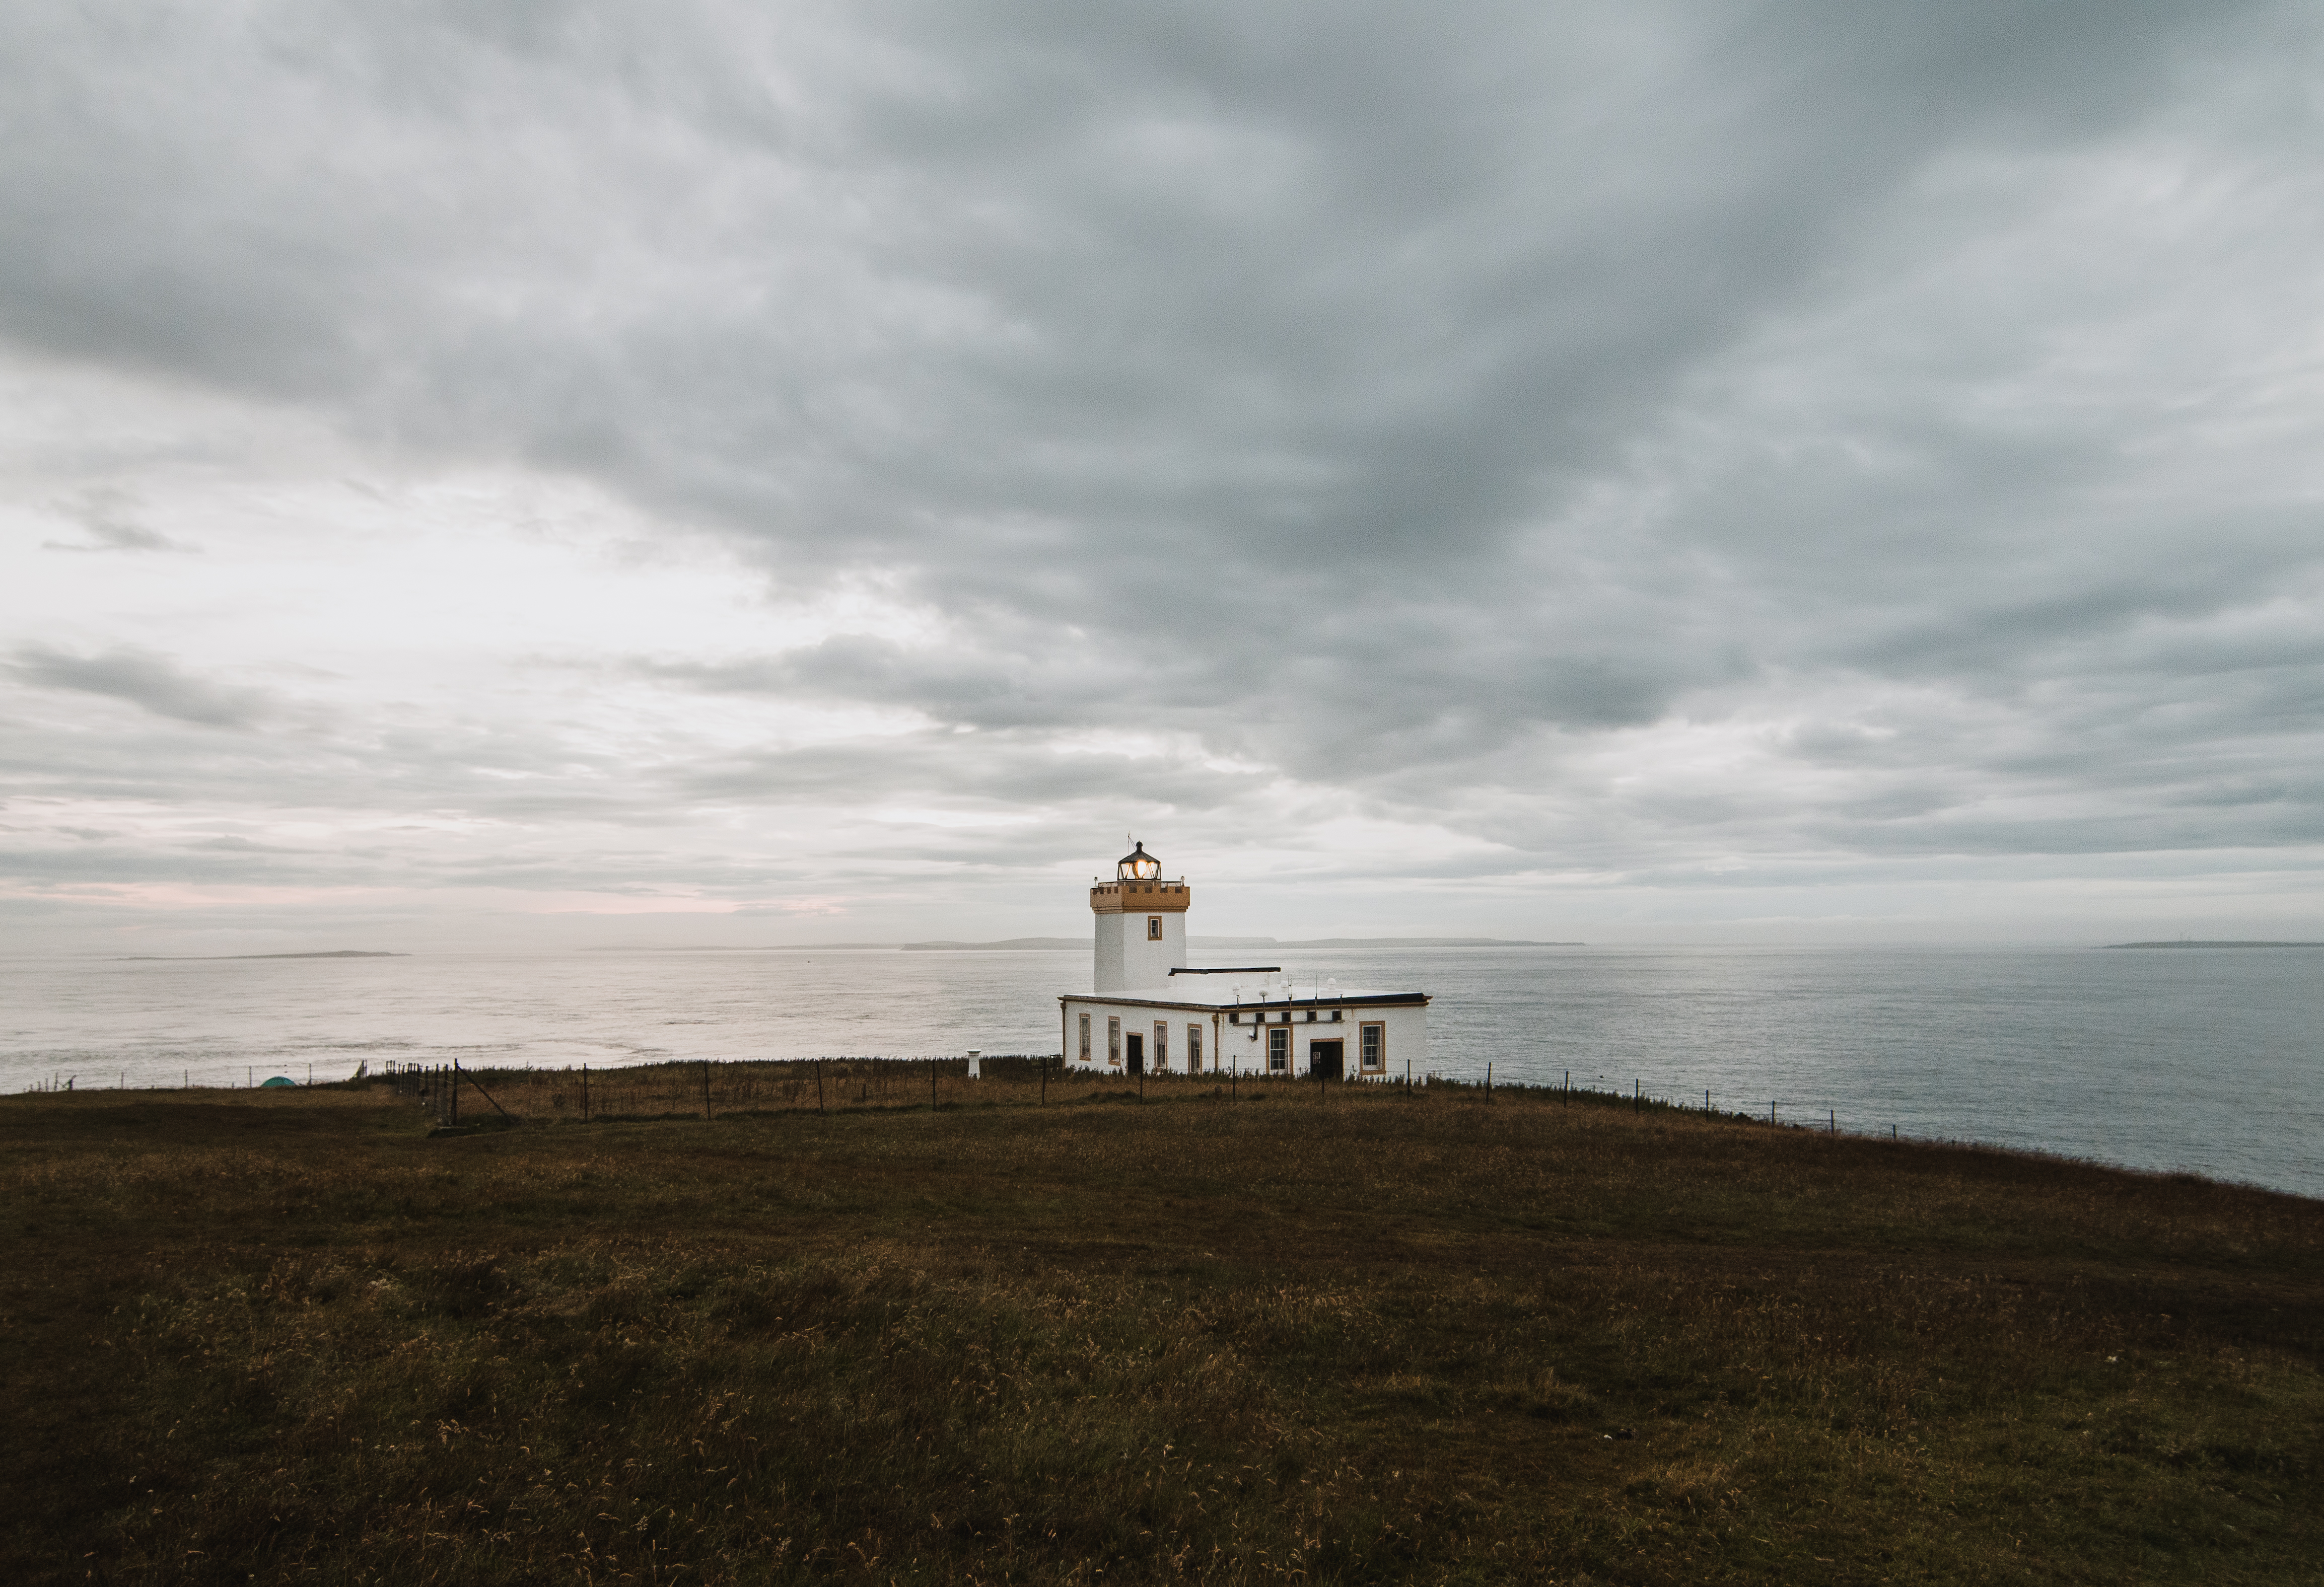 A lighthouse in operation near duncansby head